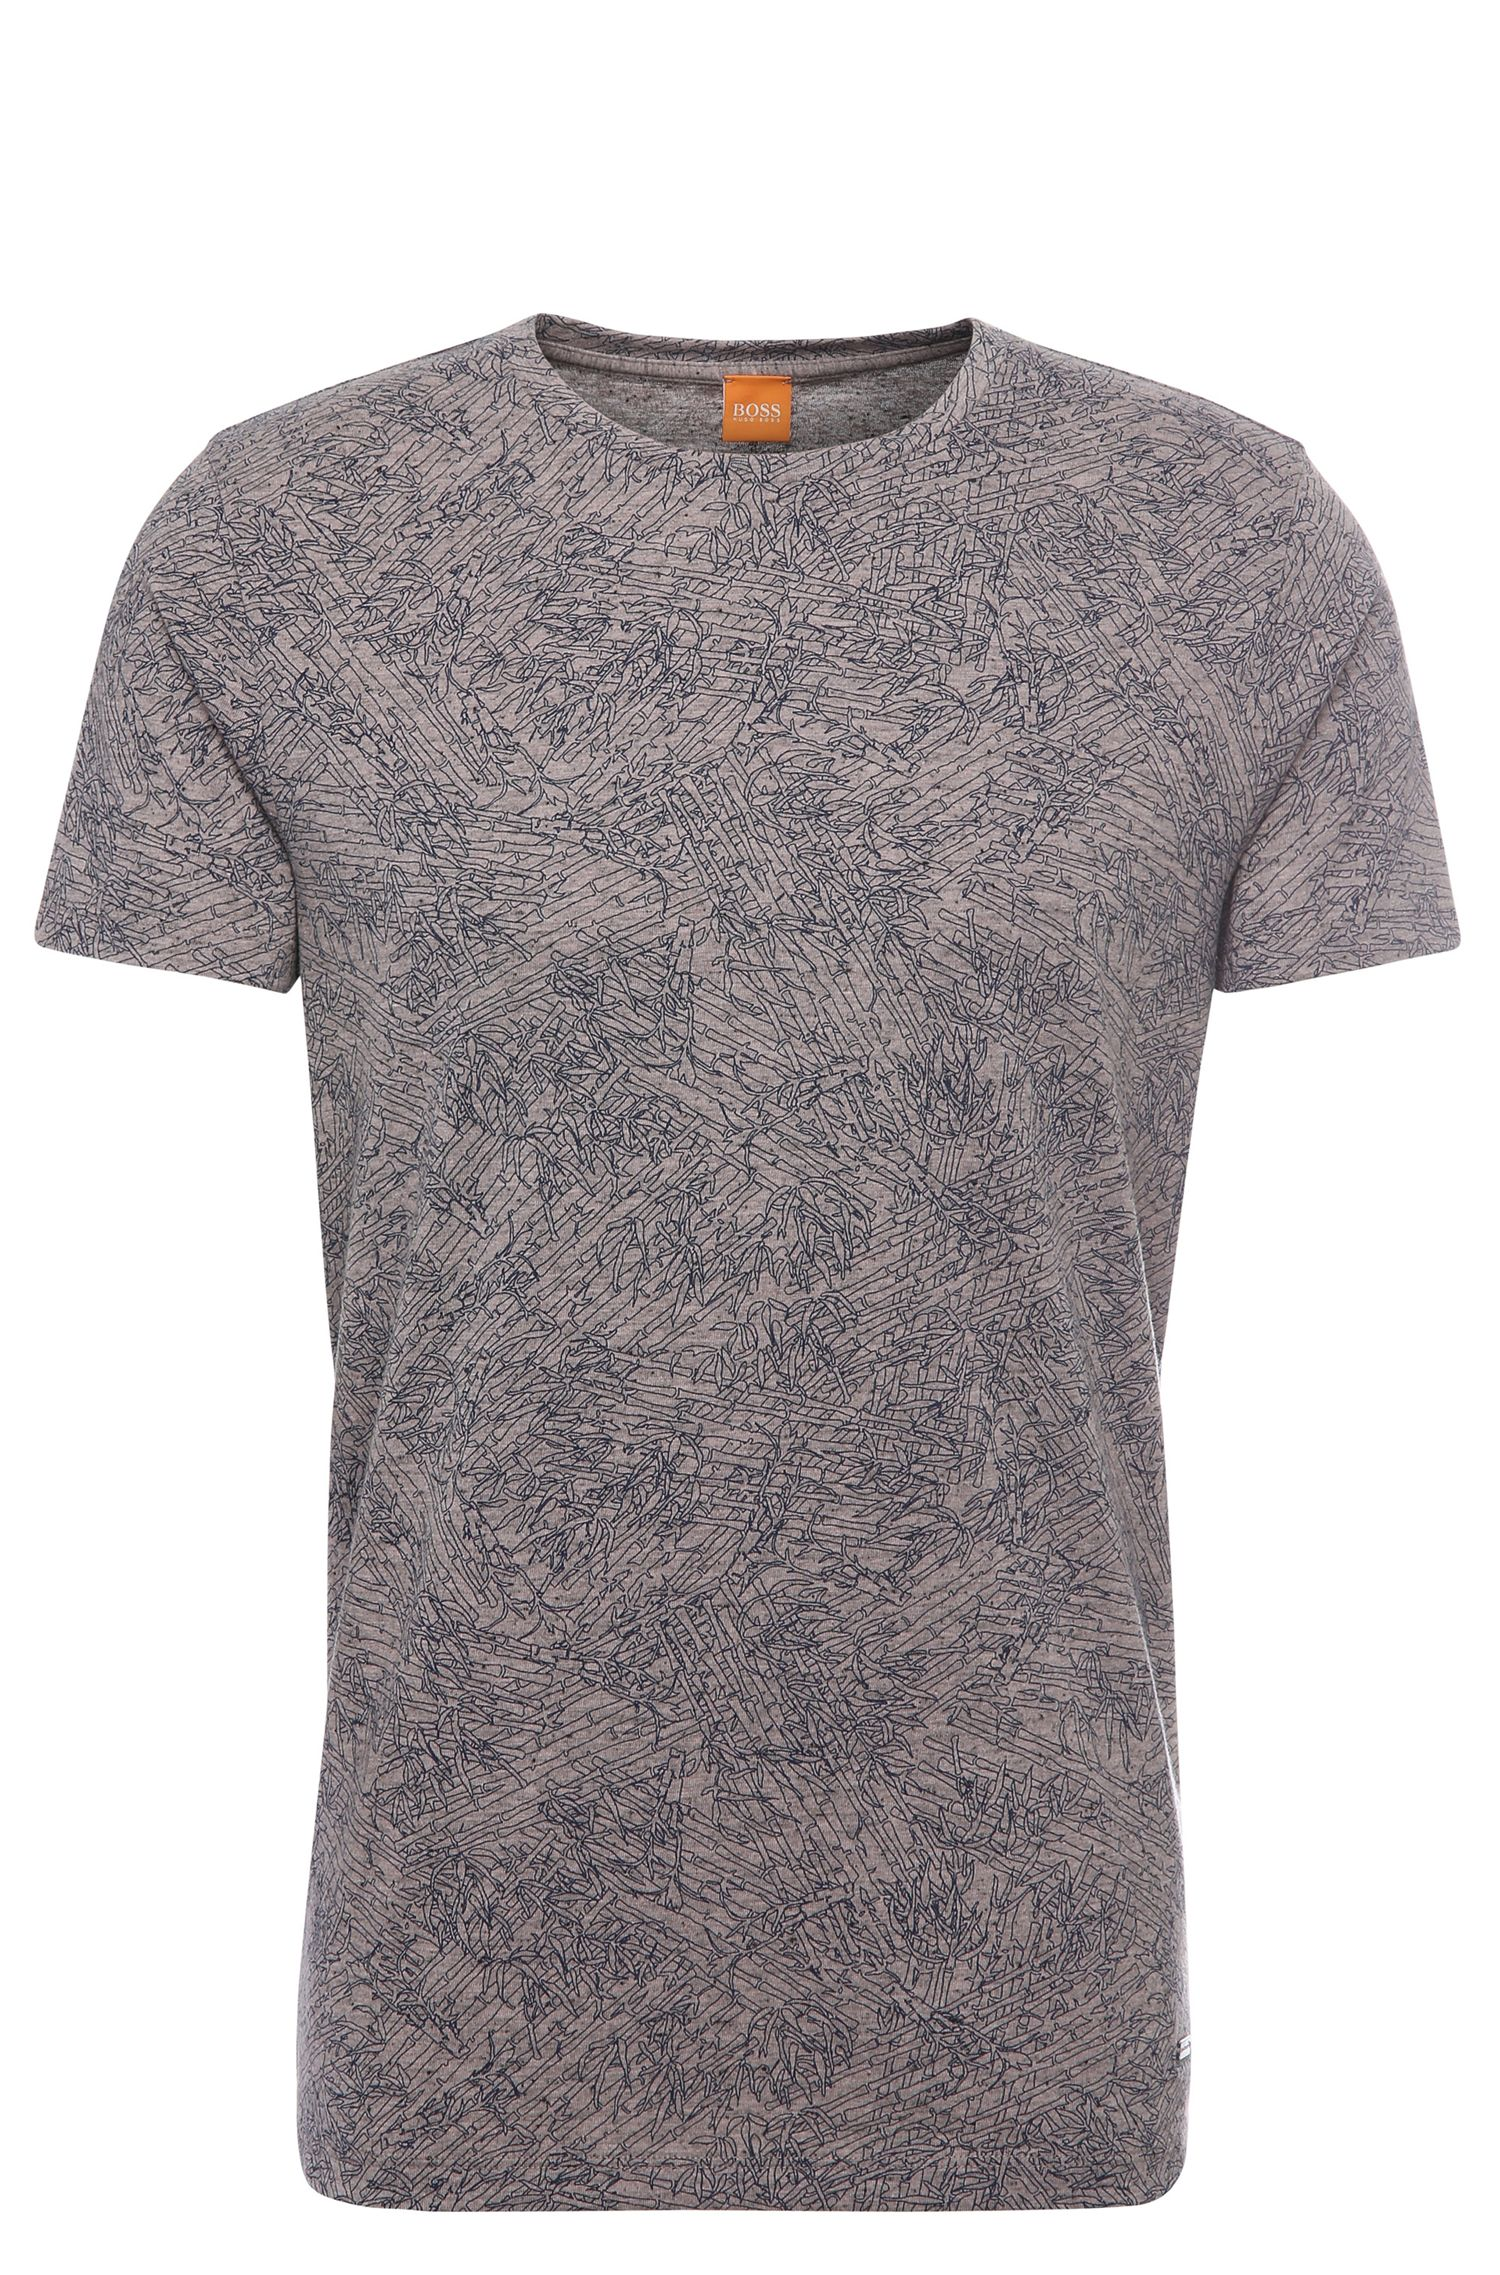 Gemustertes Relaxed-Fit T-Shirt aus Material-Mix mit Baumwolle und Modal: ´Tauryon`